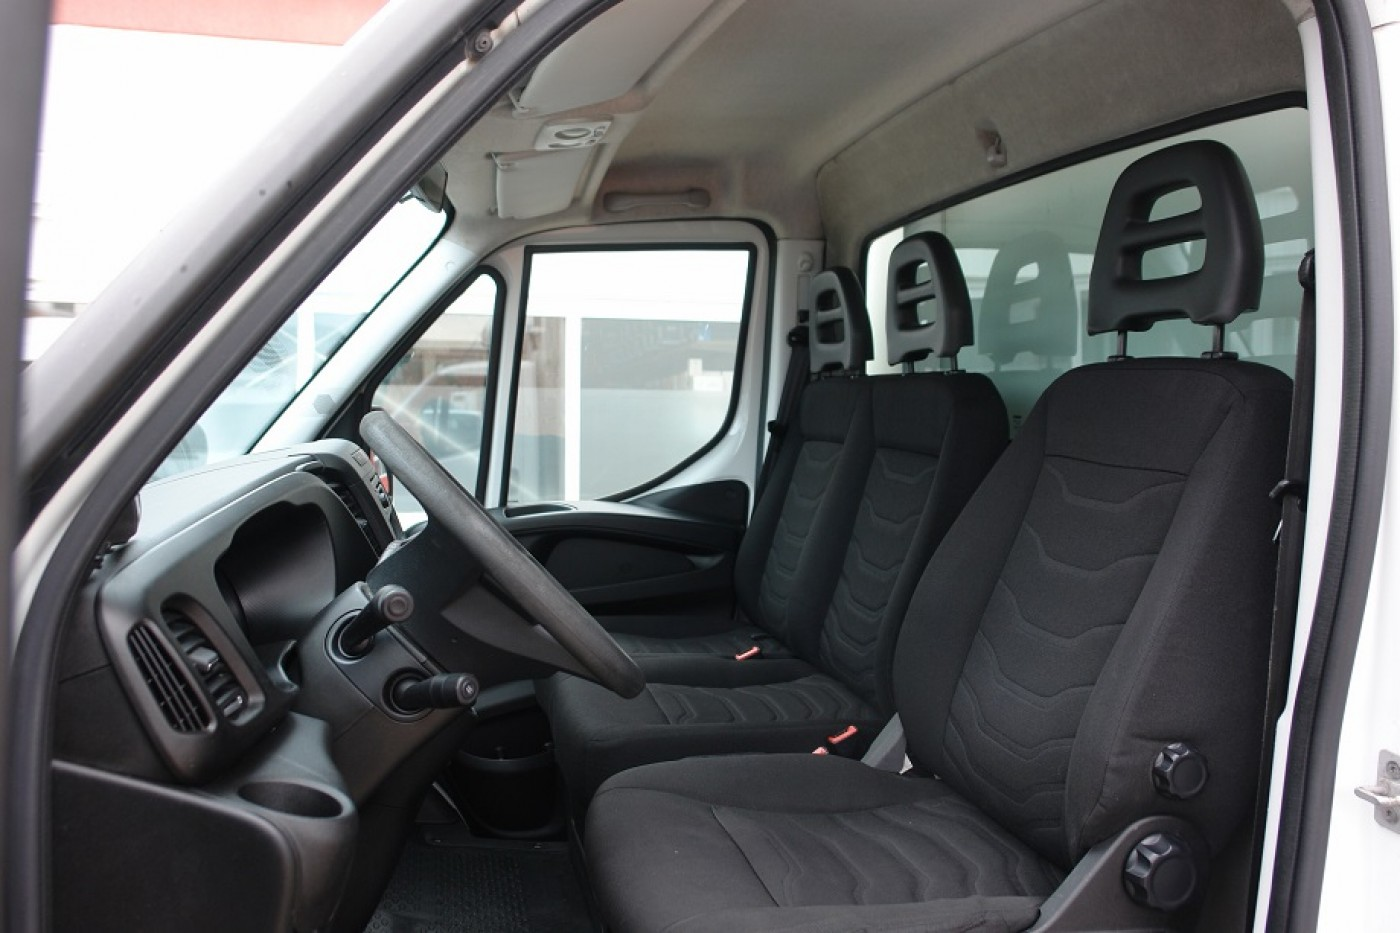 Iveco Daily 35S13 Tiefkühlkoffer Thermo King V300MAX Klima 4 neue Reifen TÜV